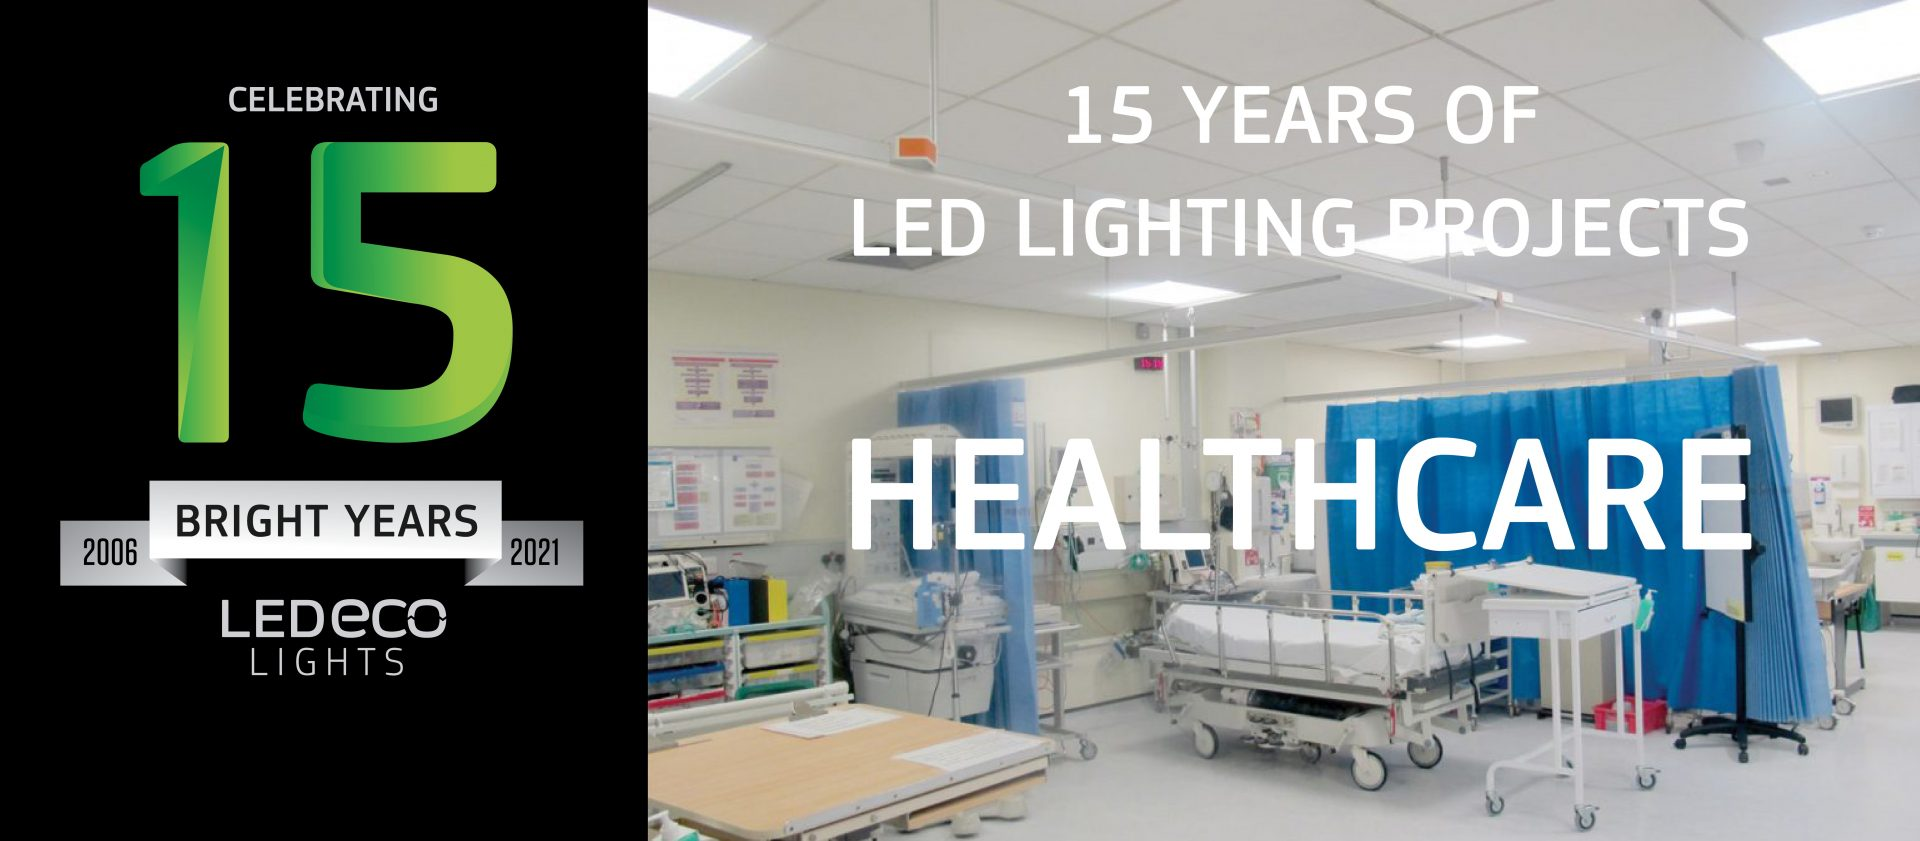 15 years of LED lighting projects